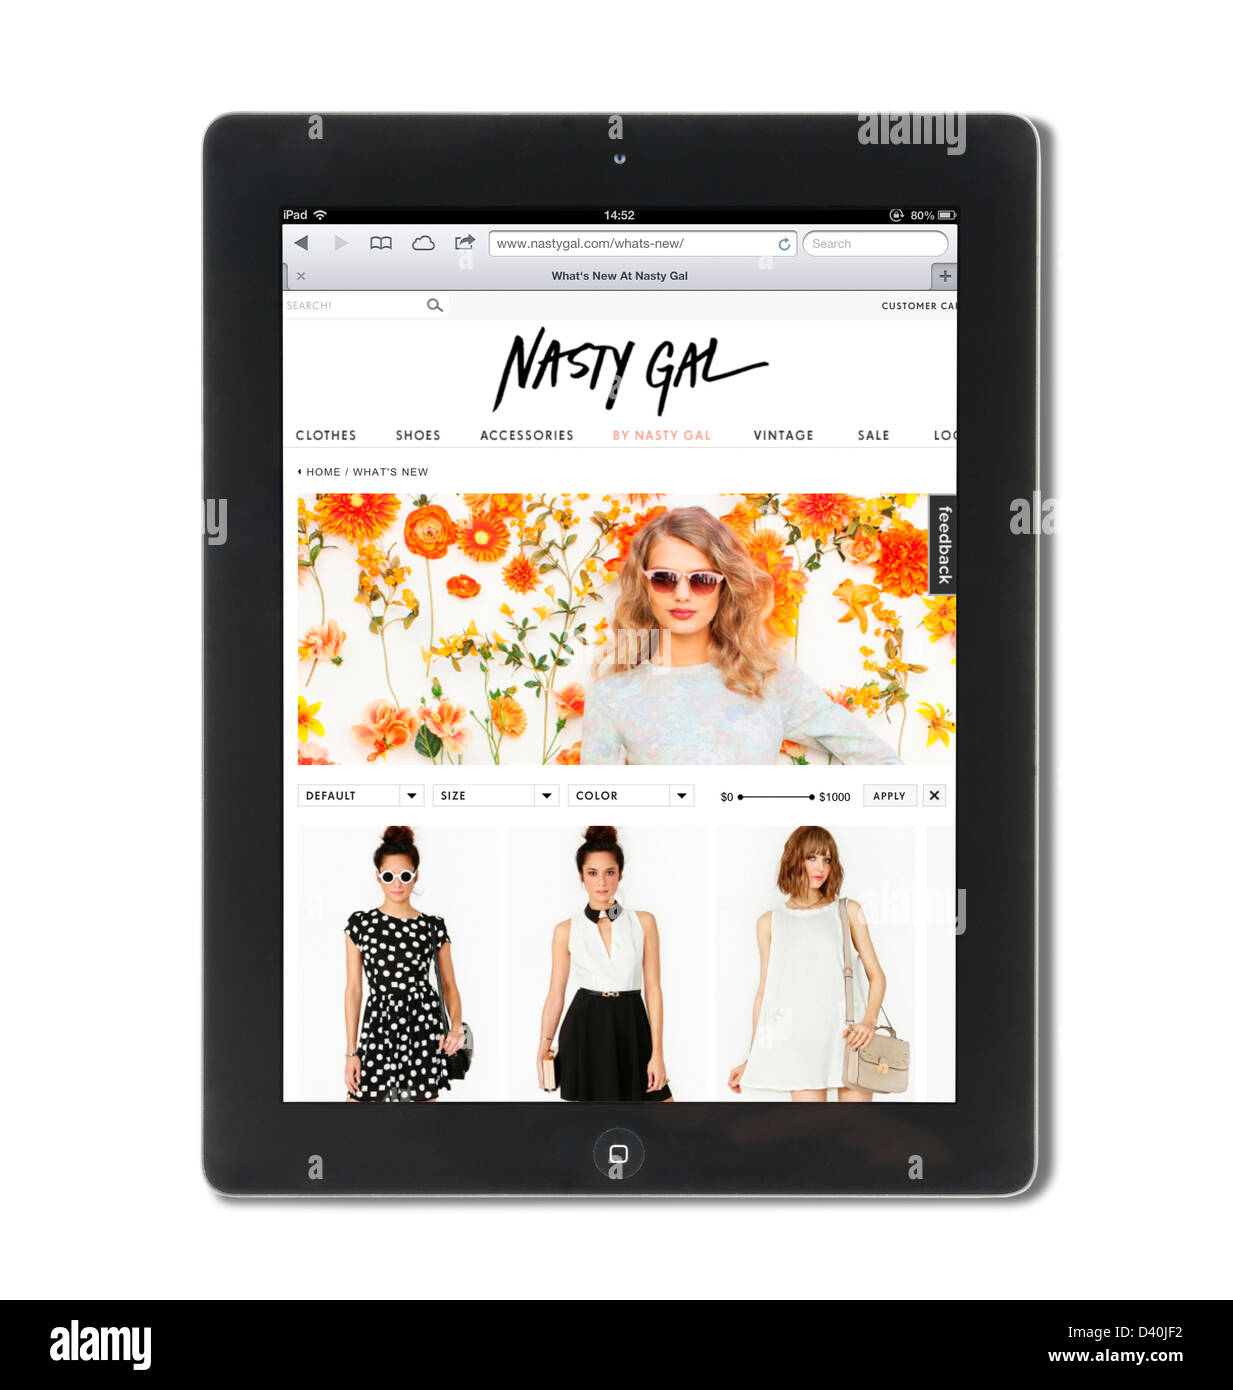 Nasty Gal, the discount clothing website for young women, viewed on an Apple iPad - Stock Image